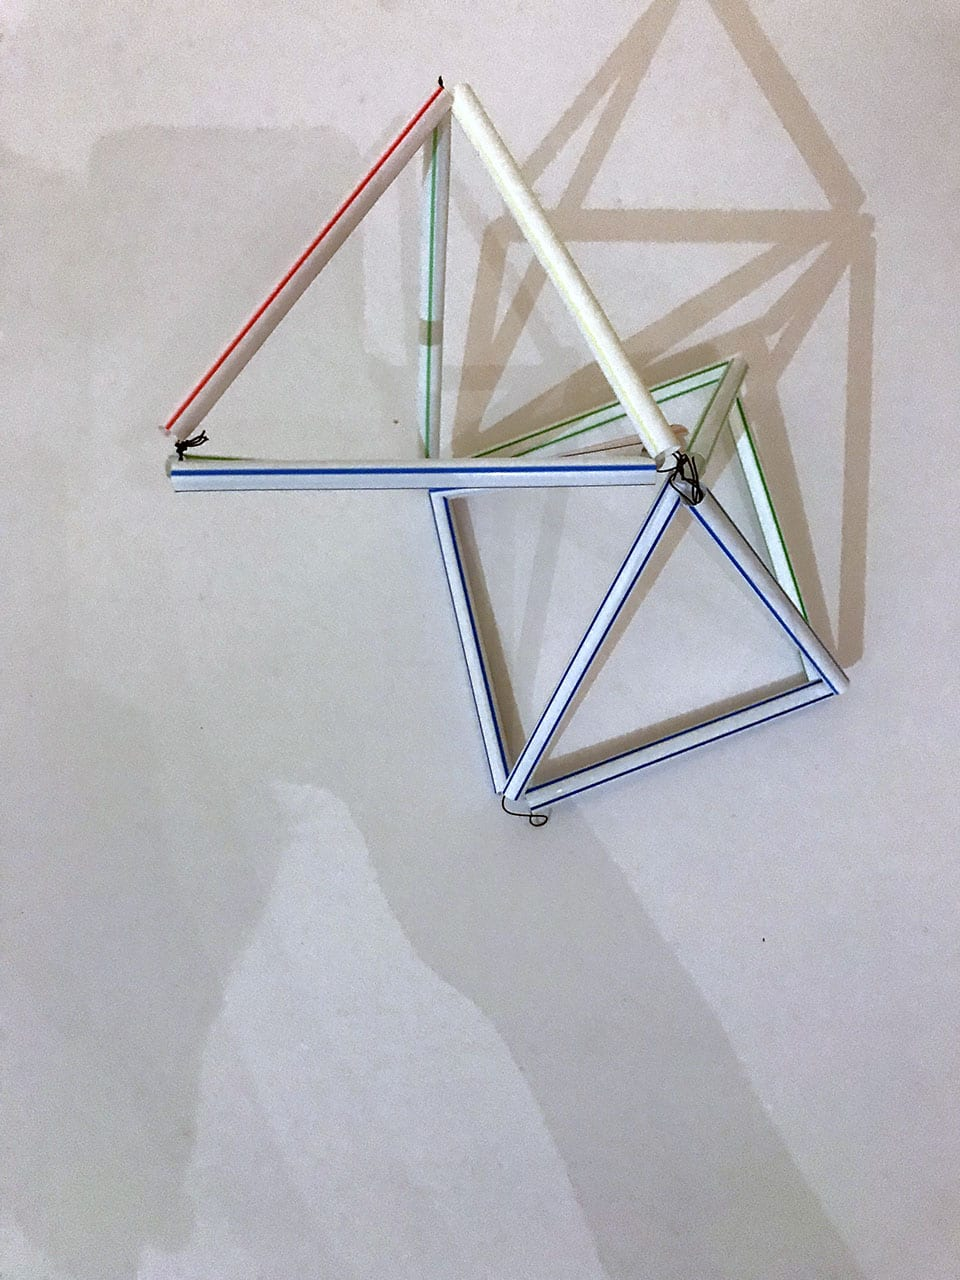 ASSIGNMENT #6 Straws Polyhedrons